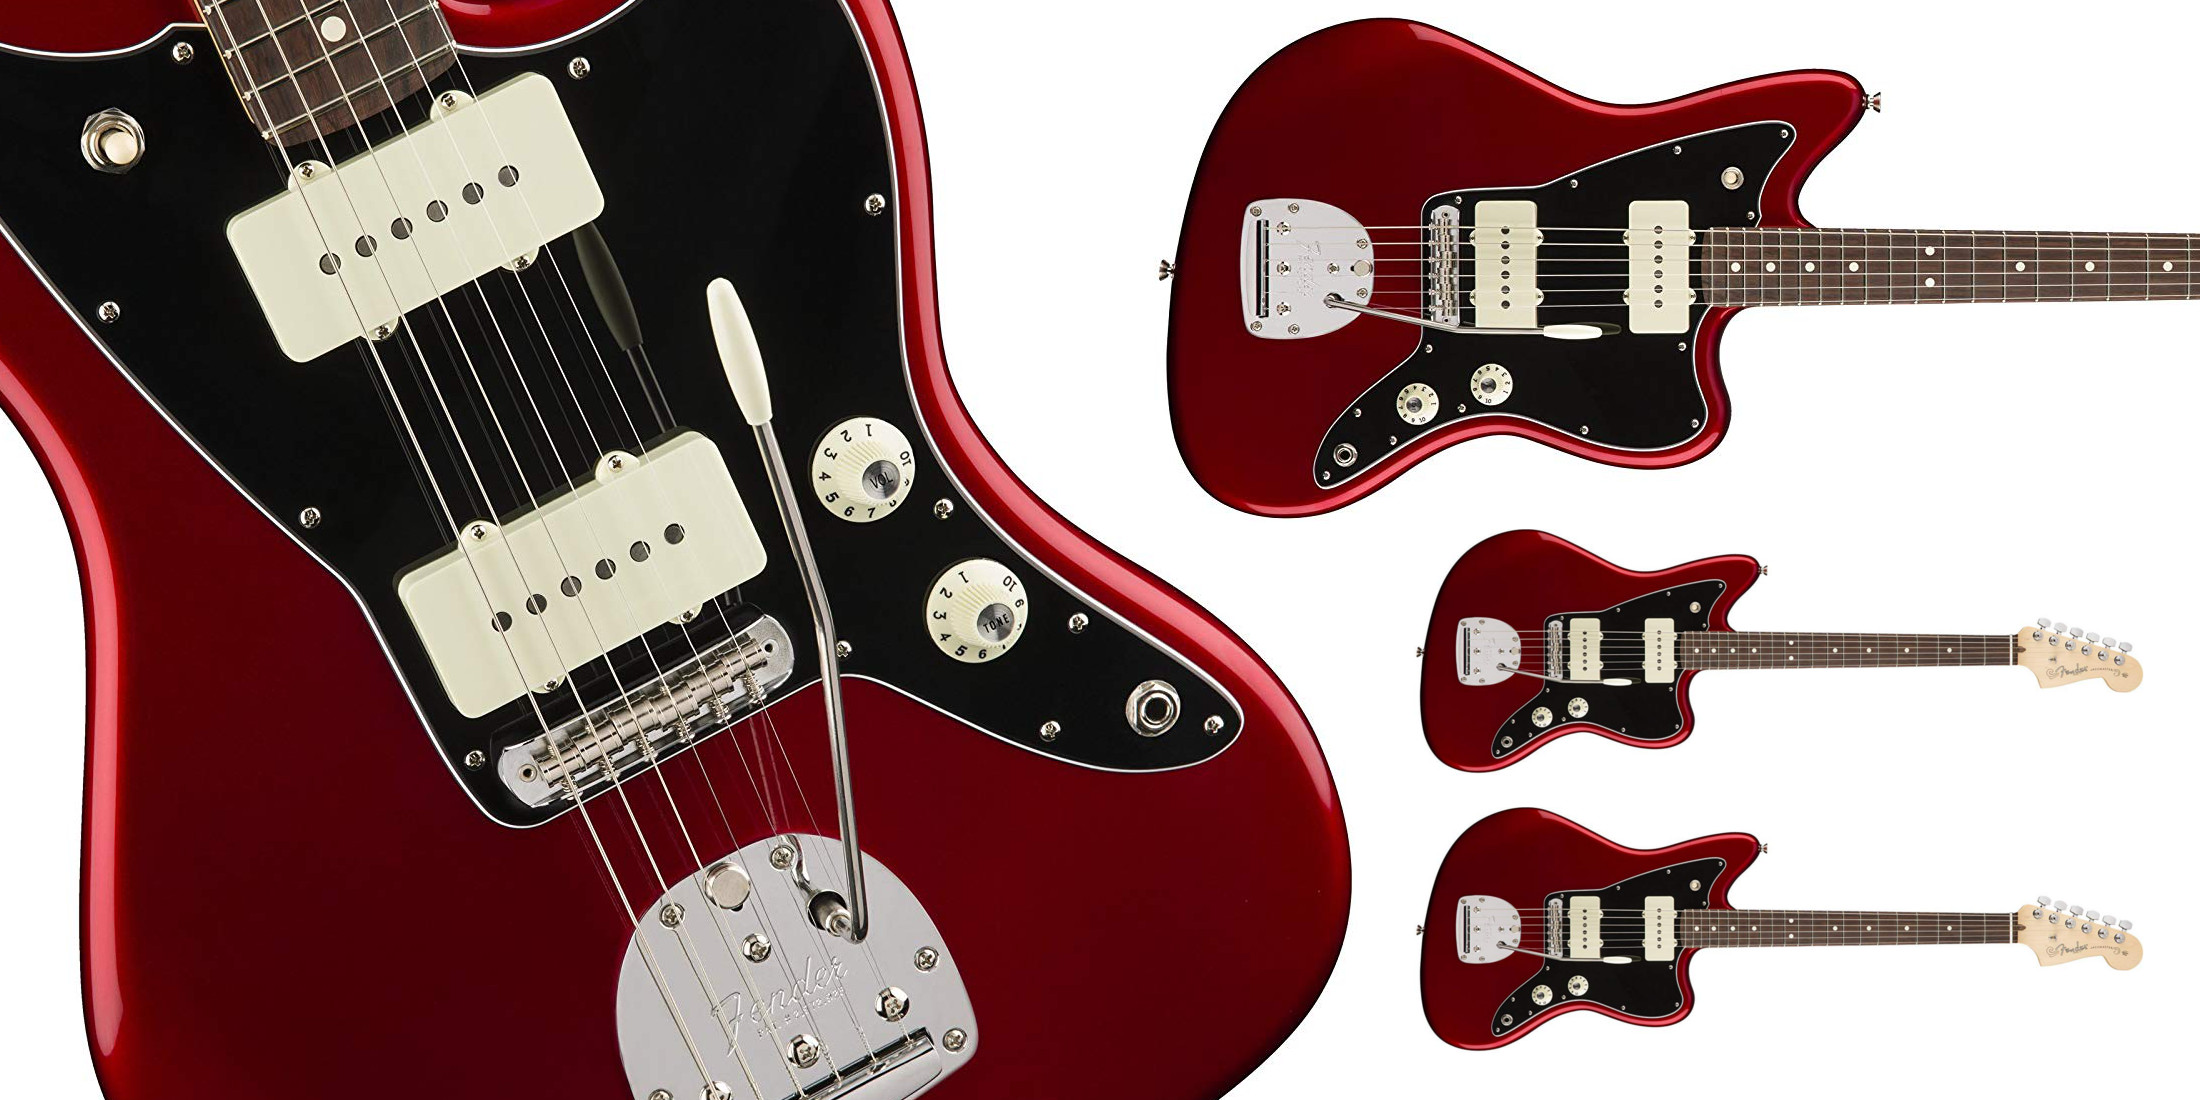 Fender's American Pro Jazzmaster Electric Guitar w/ brass Mustang saddles is $600 off